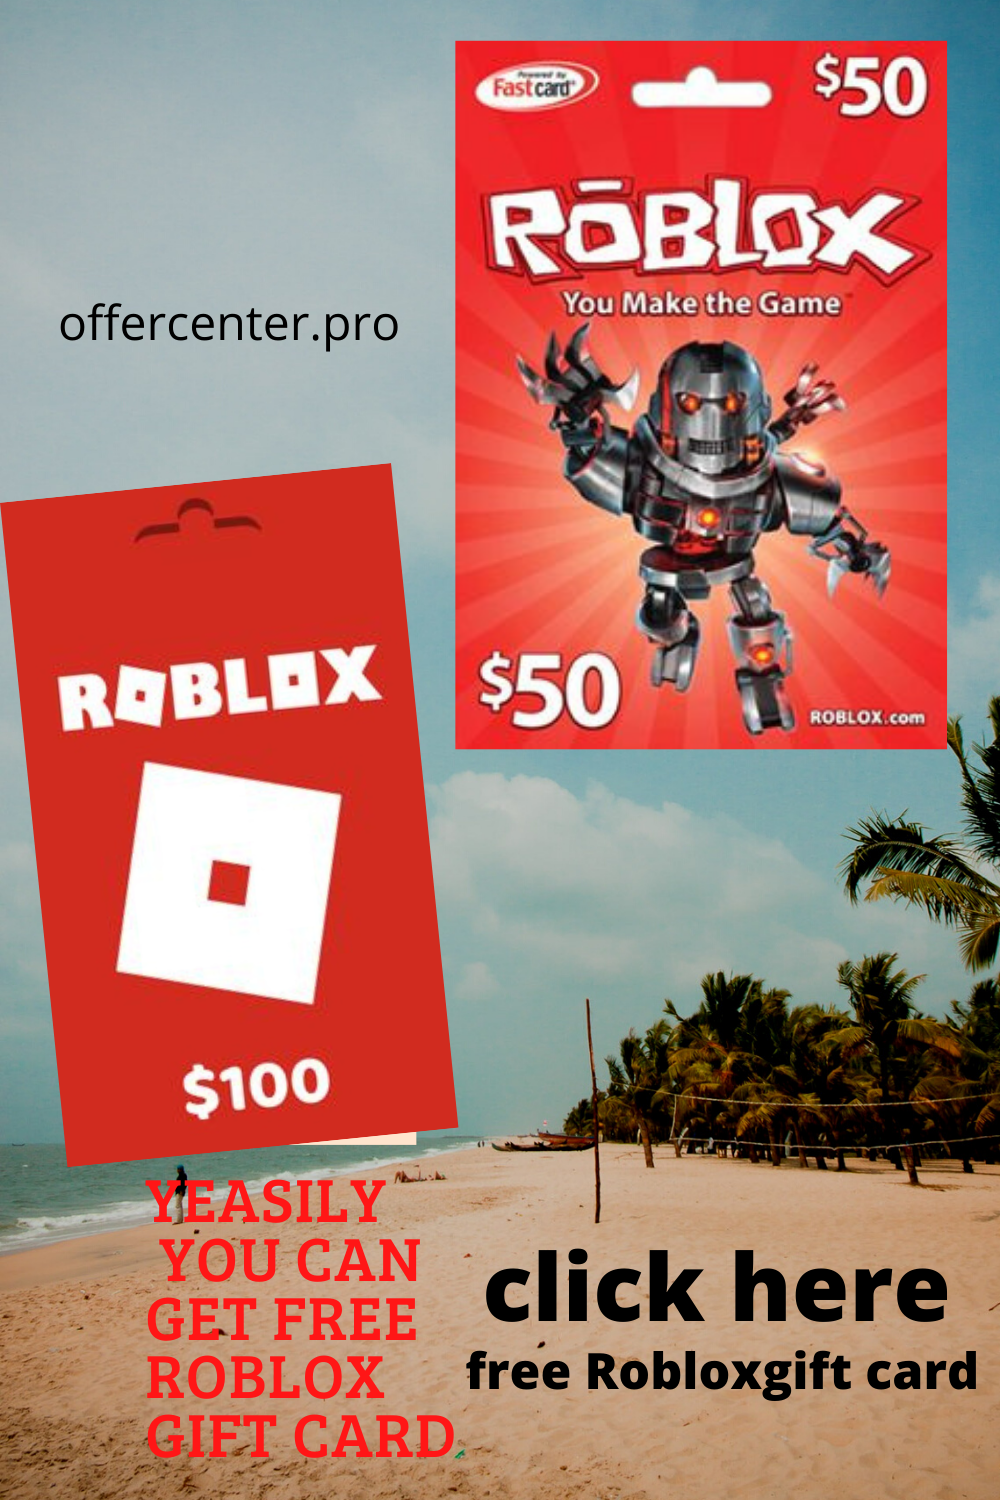 How To Get Free Robux Code In 2021 Roblox Gifts Amazon Gift Card Free Gift Card Giveaway In 2021 Gift Card Generator Amazon Gift Card Free Roblox Gifts